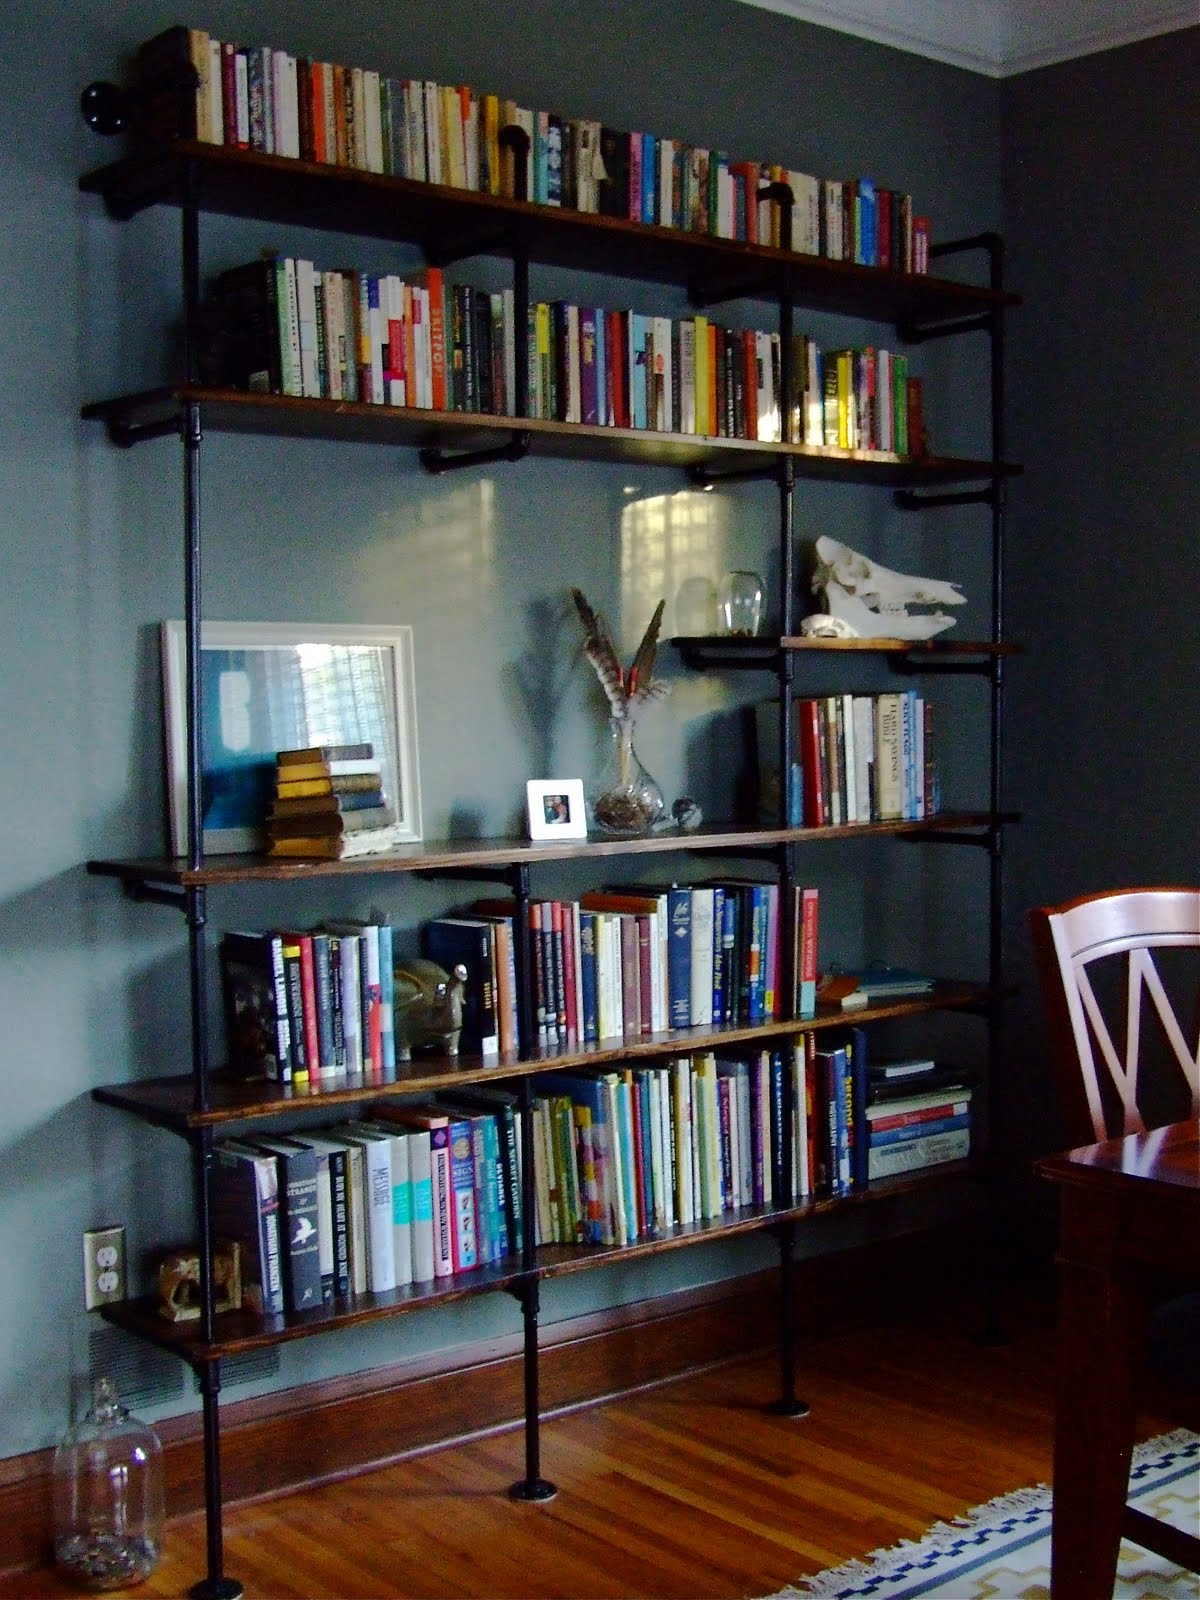 Sinnemota plumbing pipe bookshelf - What did the wall say to the bookcase ...